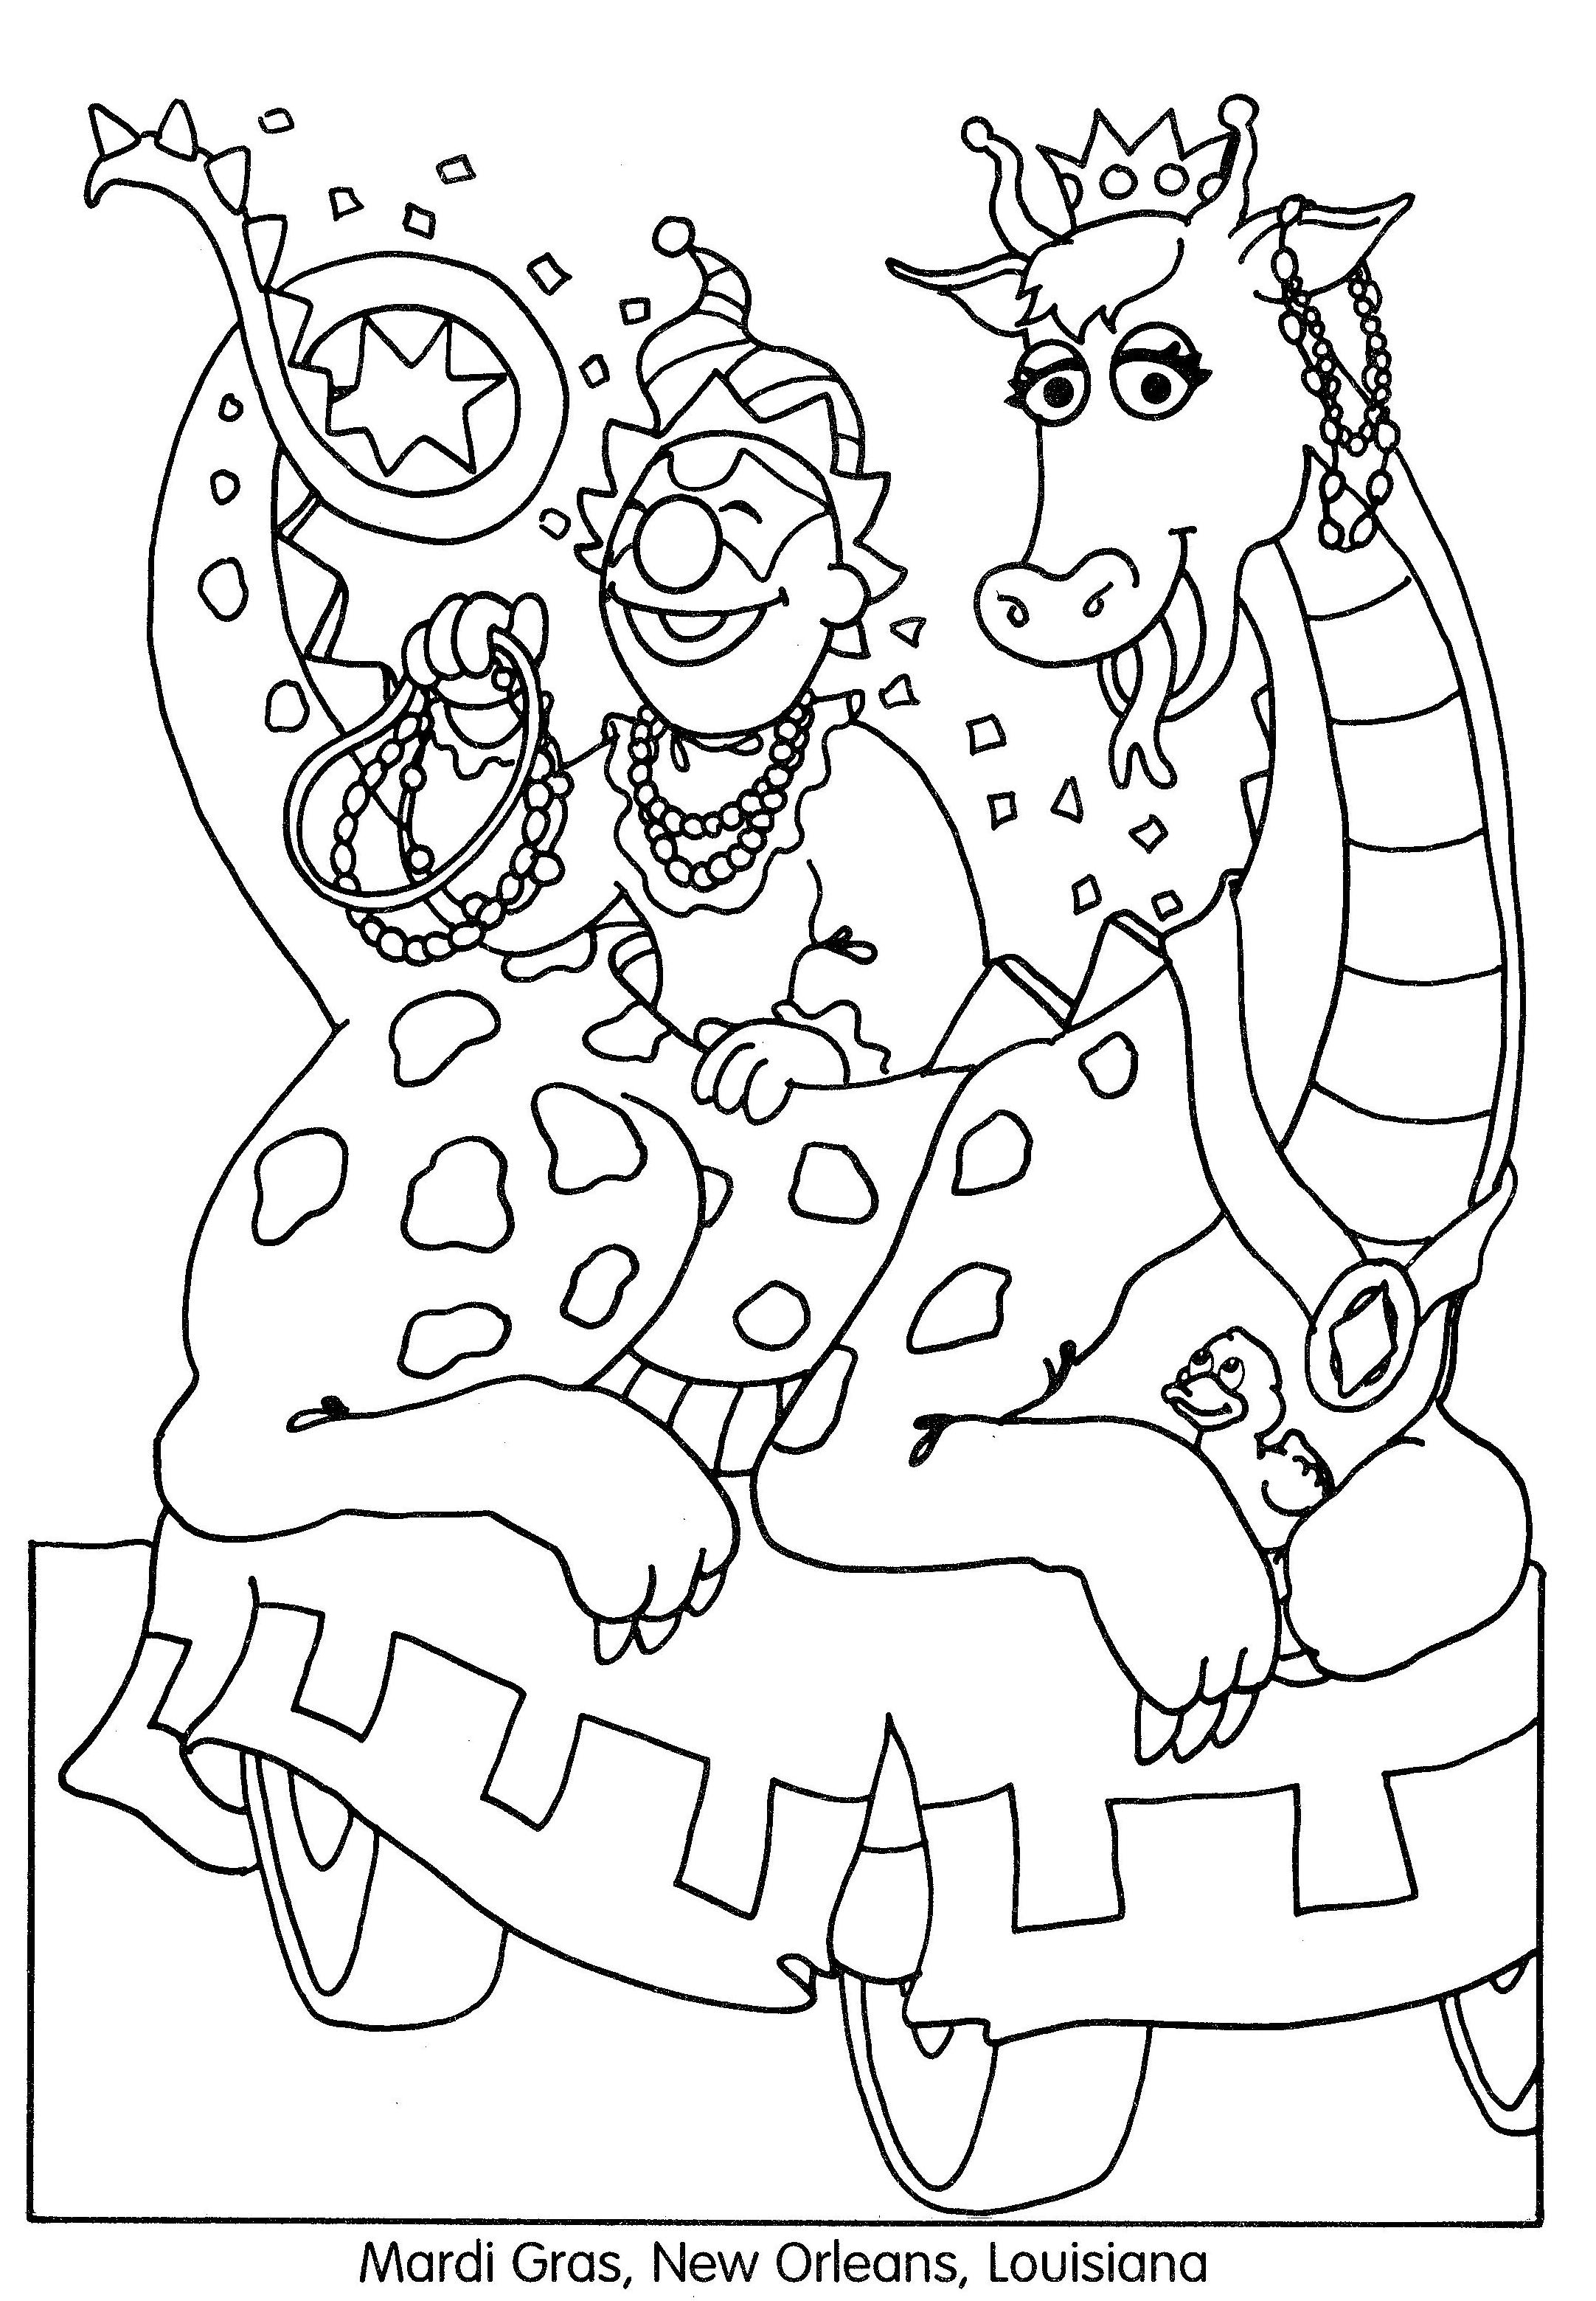 Parade coloring pages to print for adults - Happy